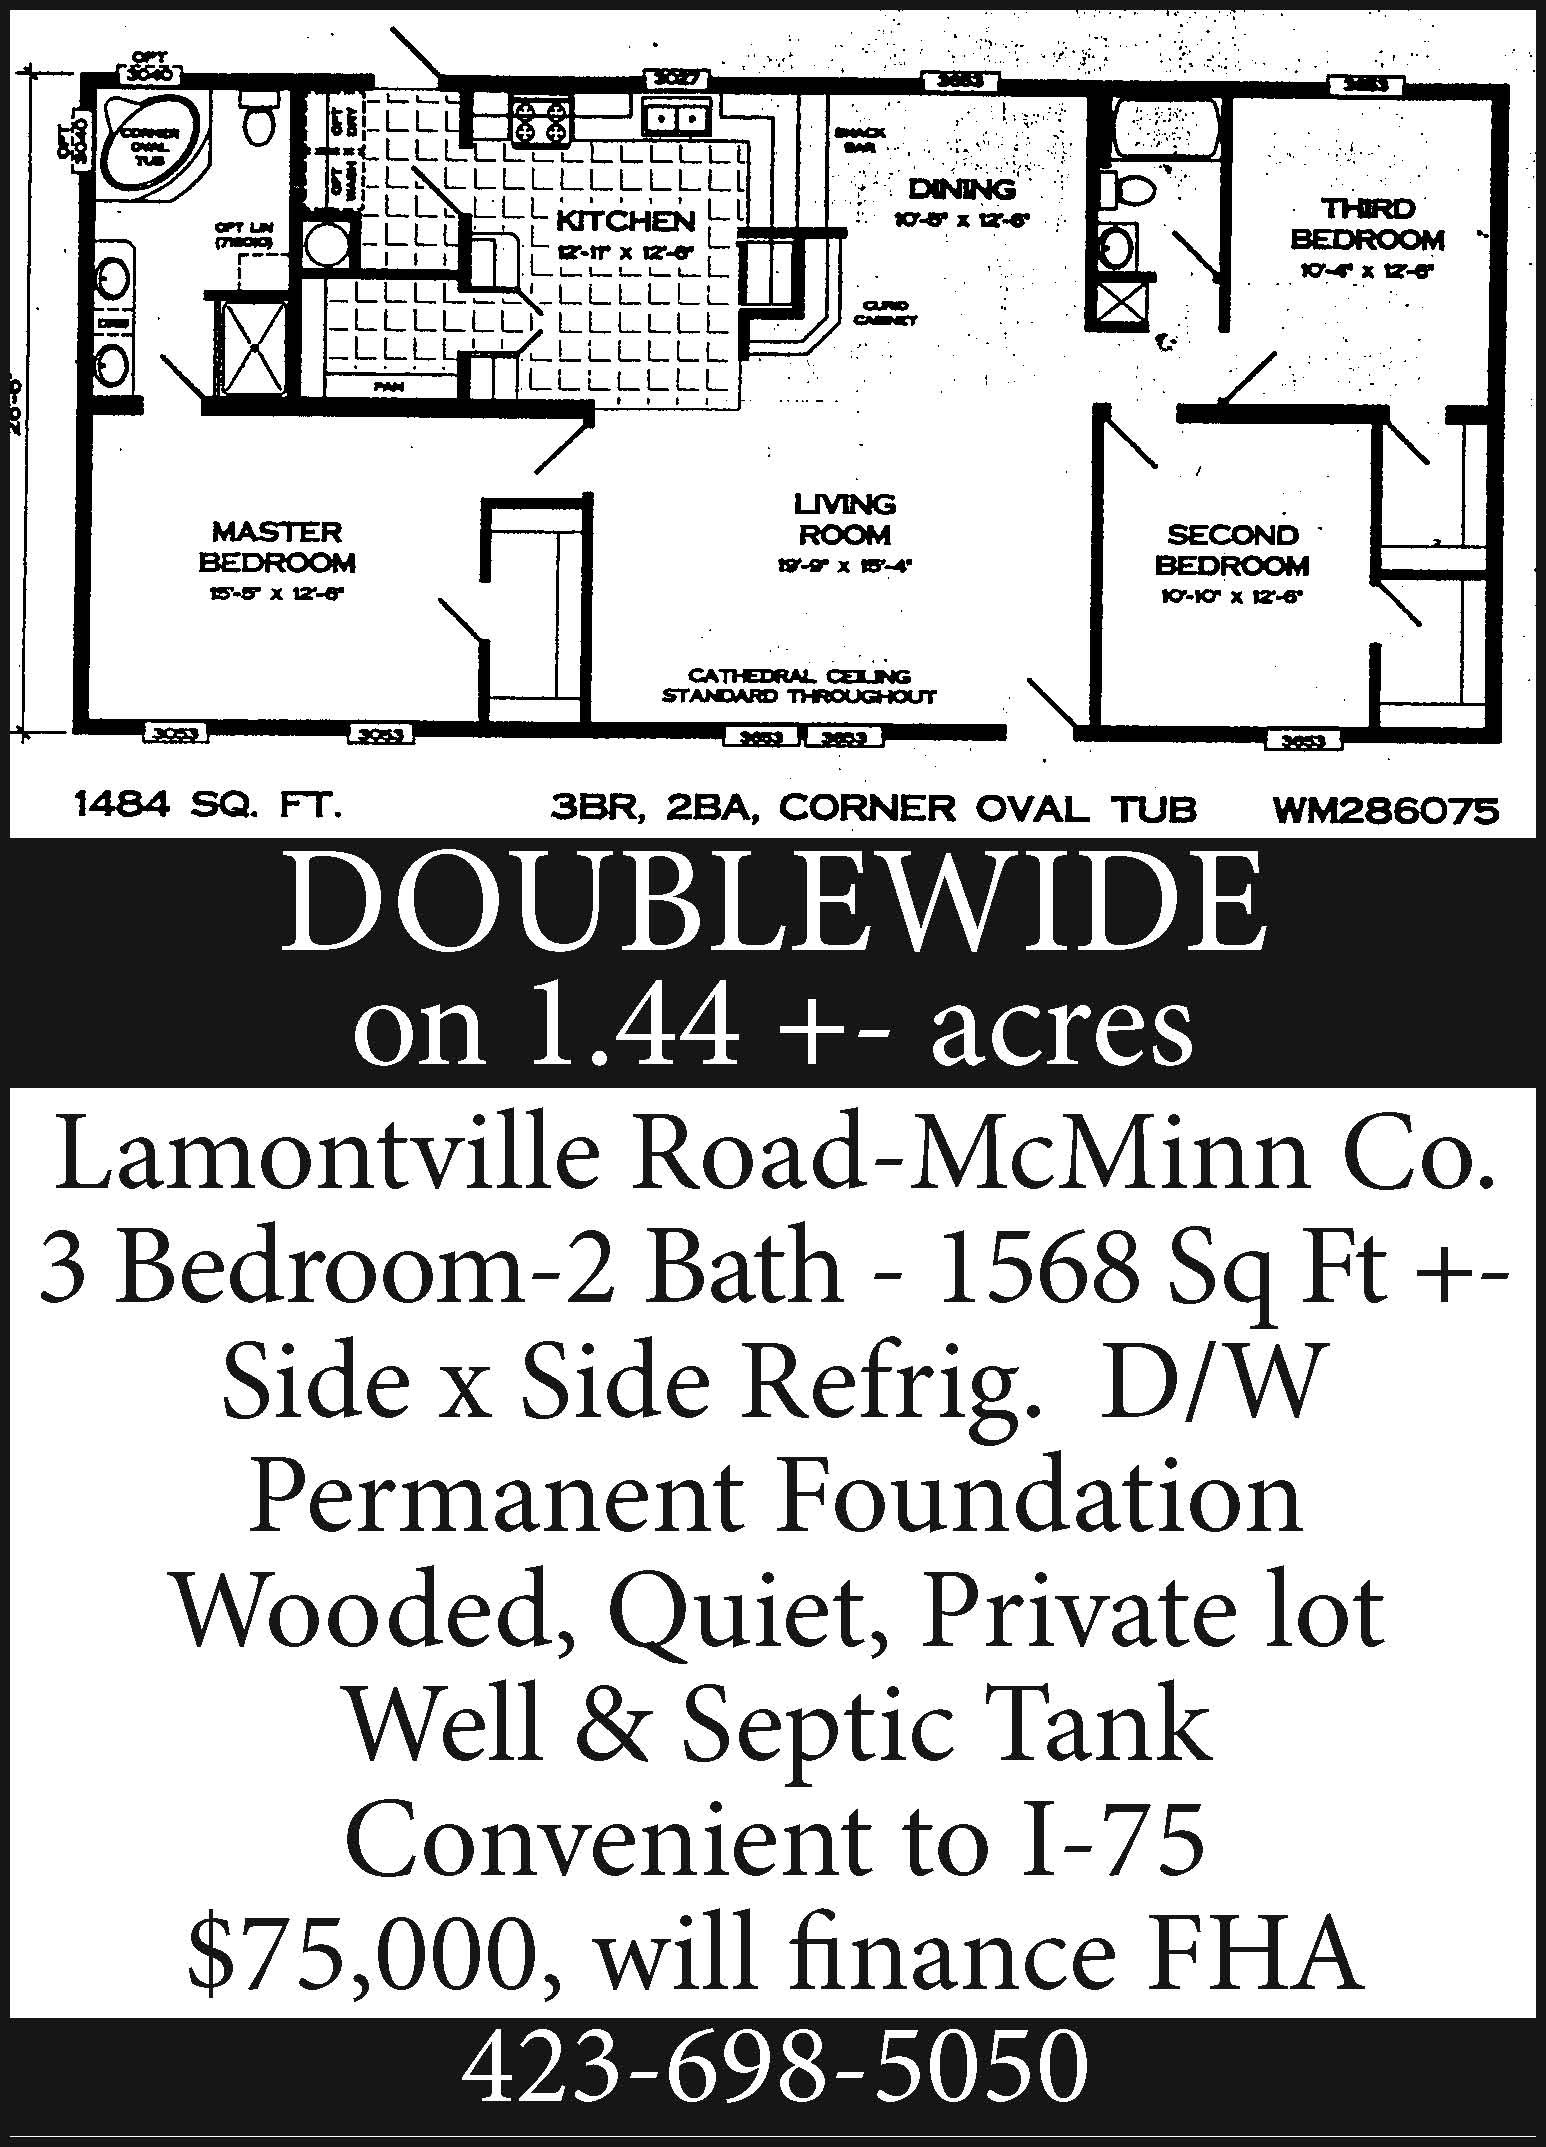 Double Wide on 1.44 acres on Lamontville Road